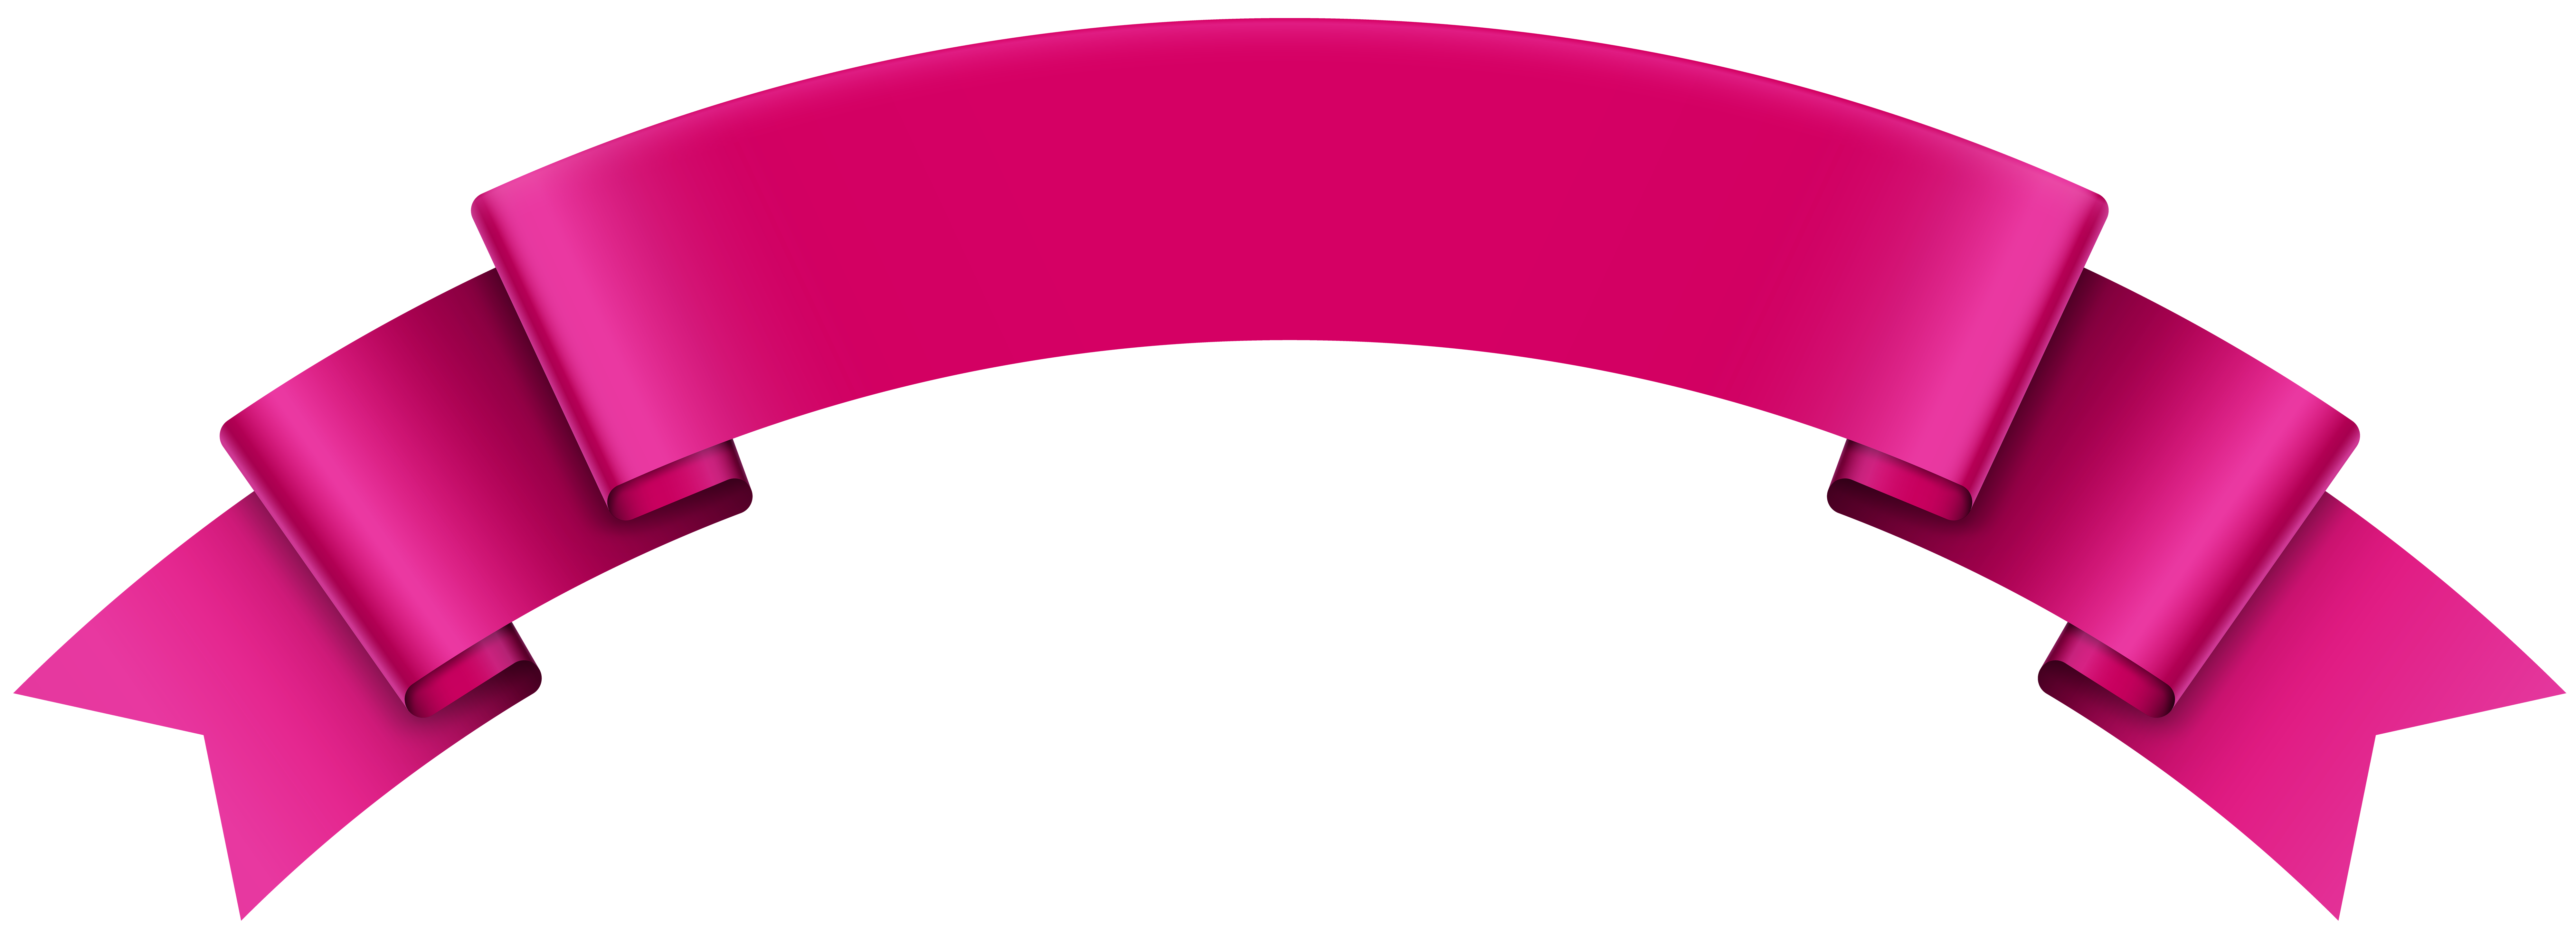 Pink Ribbon Banner Clipart Png.